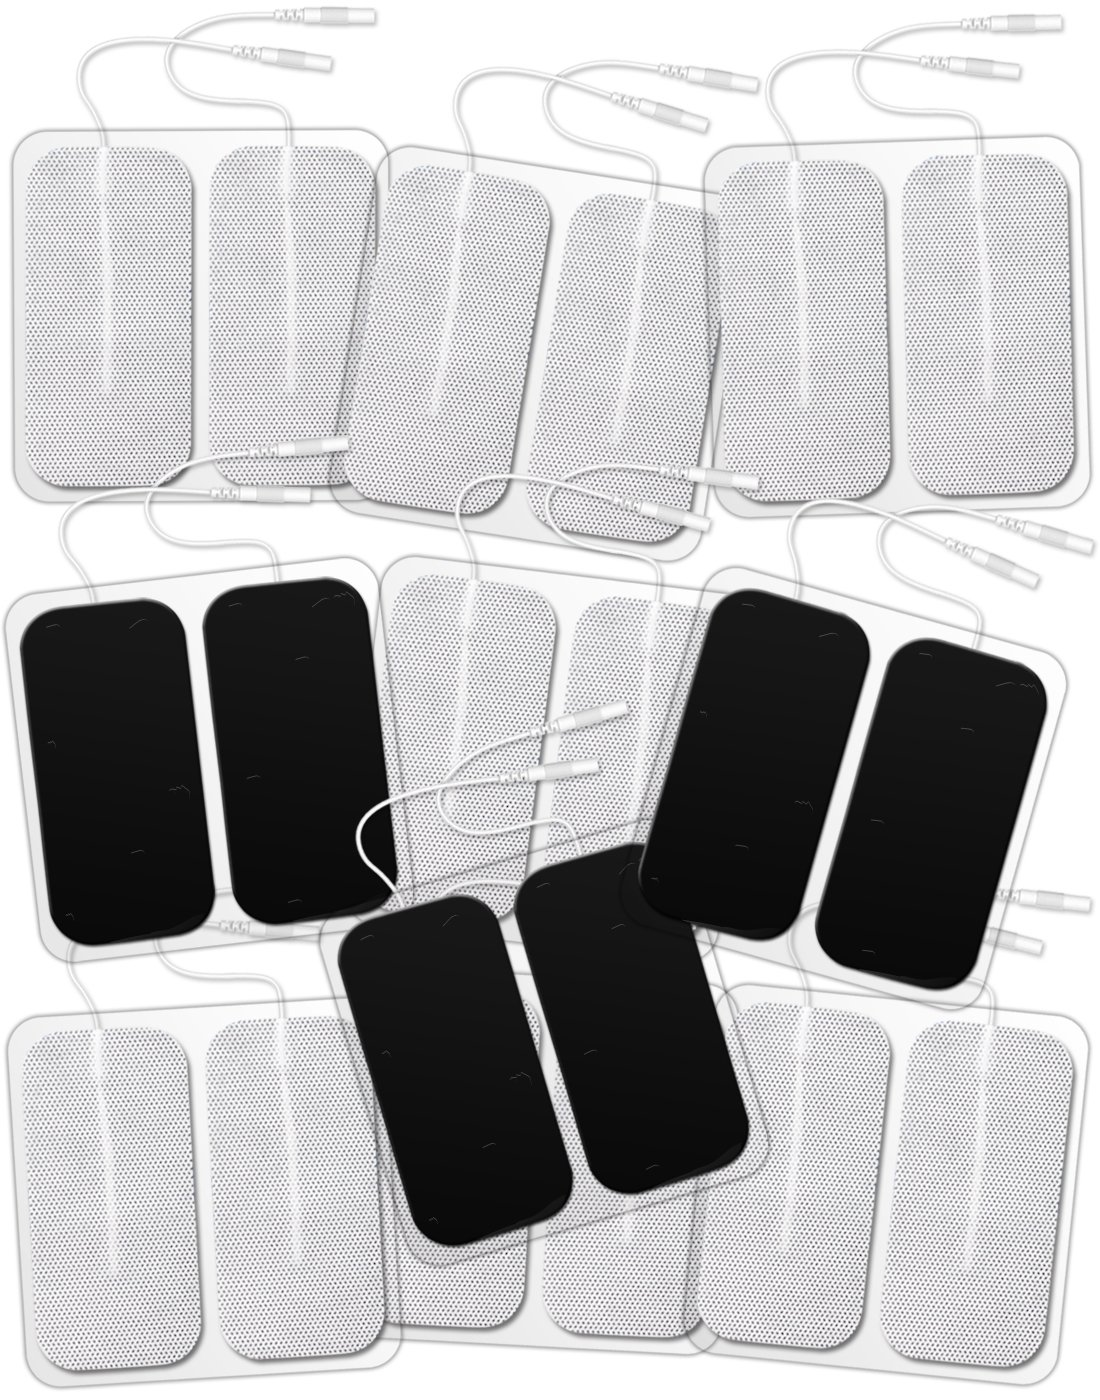 DONECO TENS Unit Pads 2X4 20 Pcs Replacement Pads Electrode Patches for Electrotherapy by DONECO